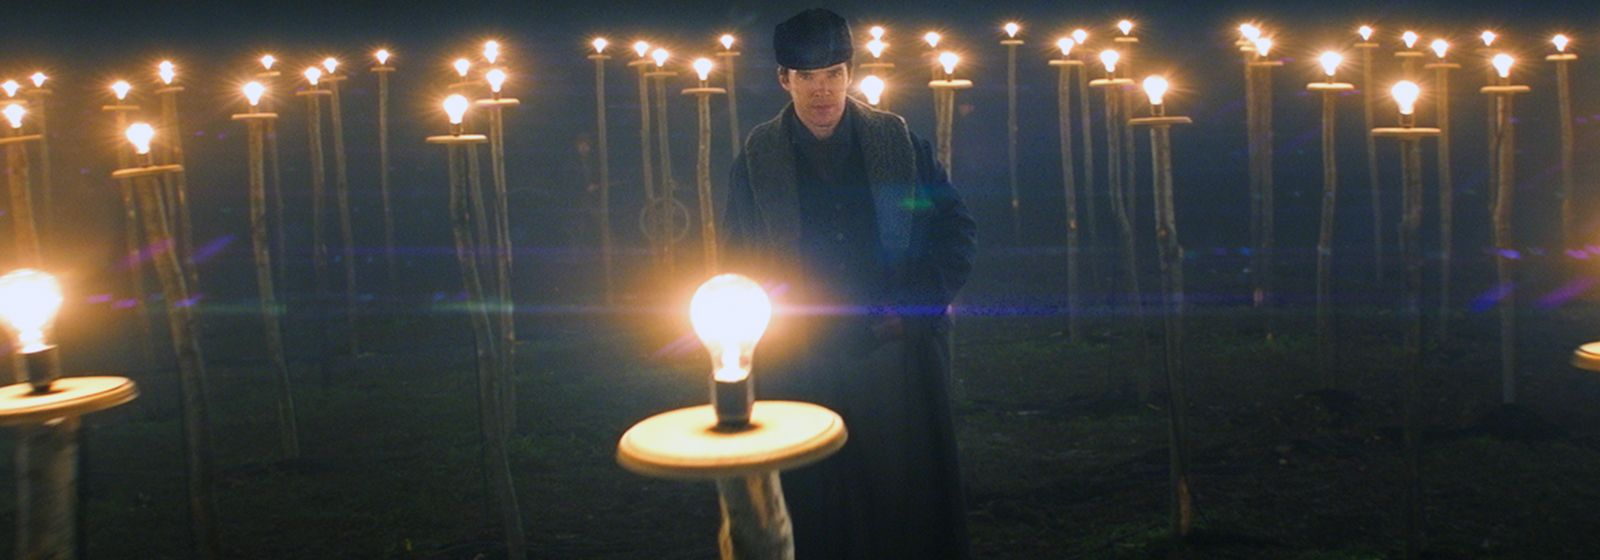 Edison and Westinghouse battle for dominance in new movie